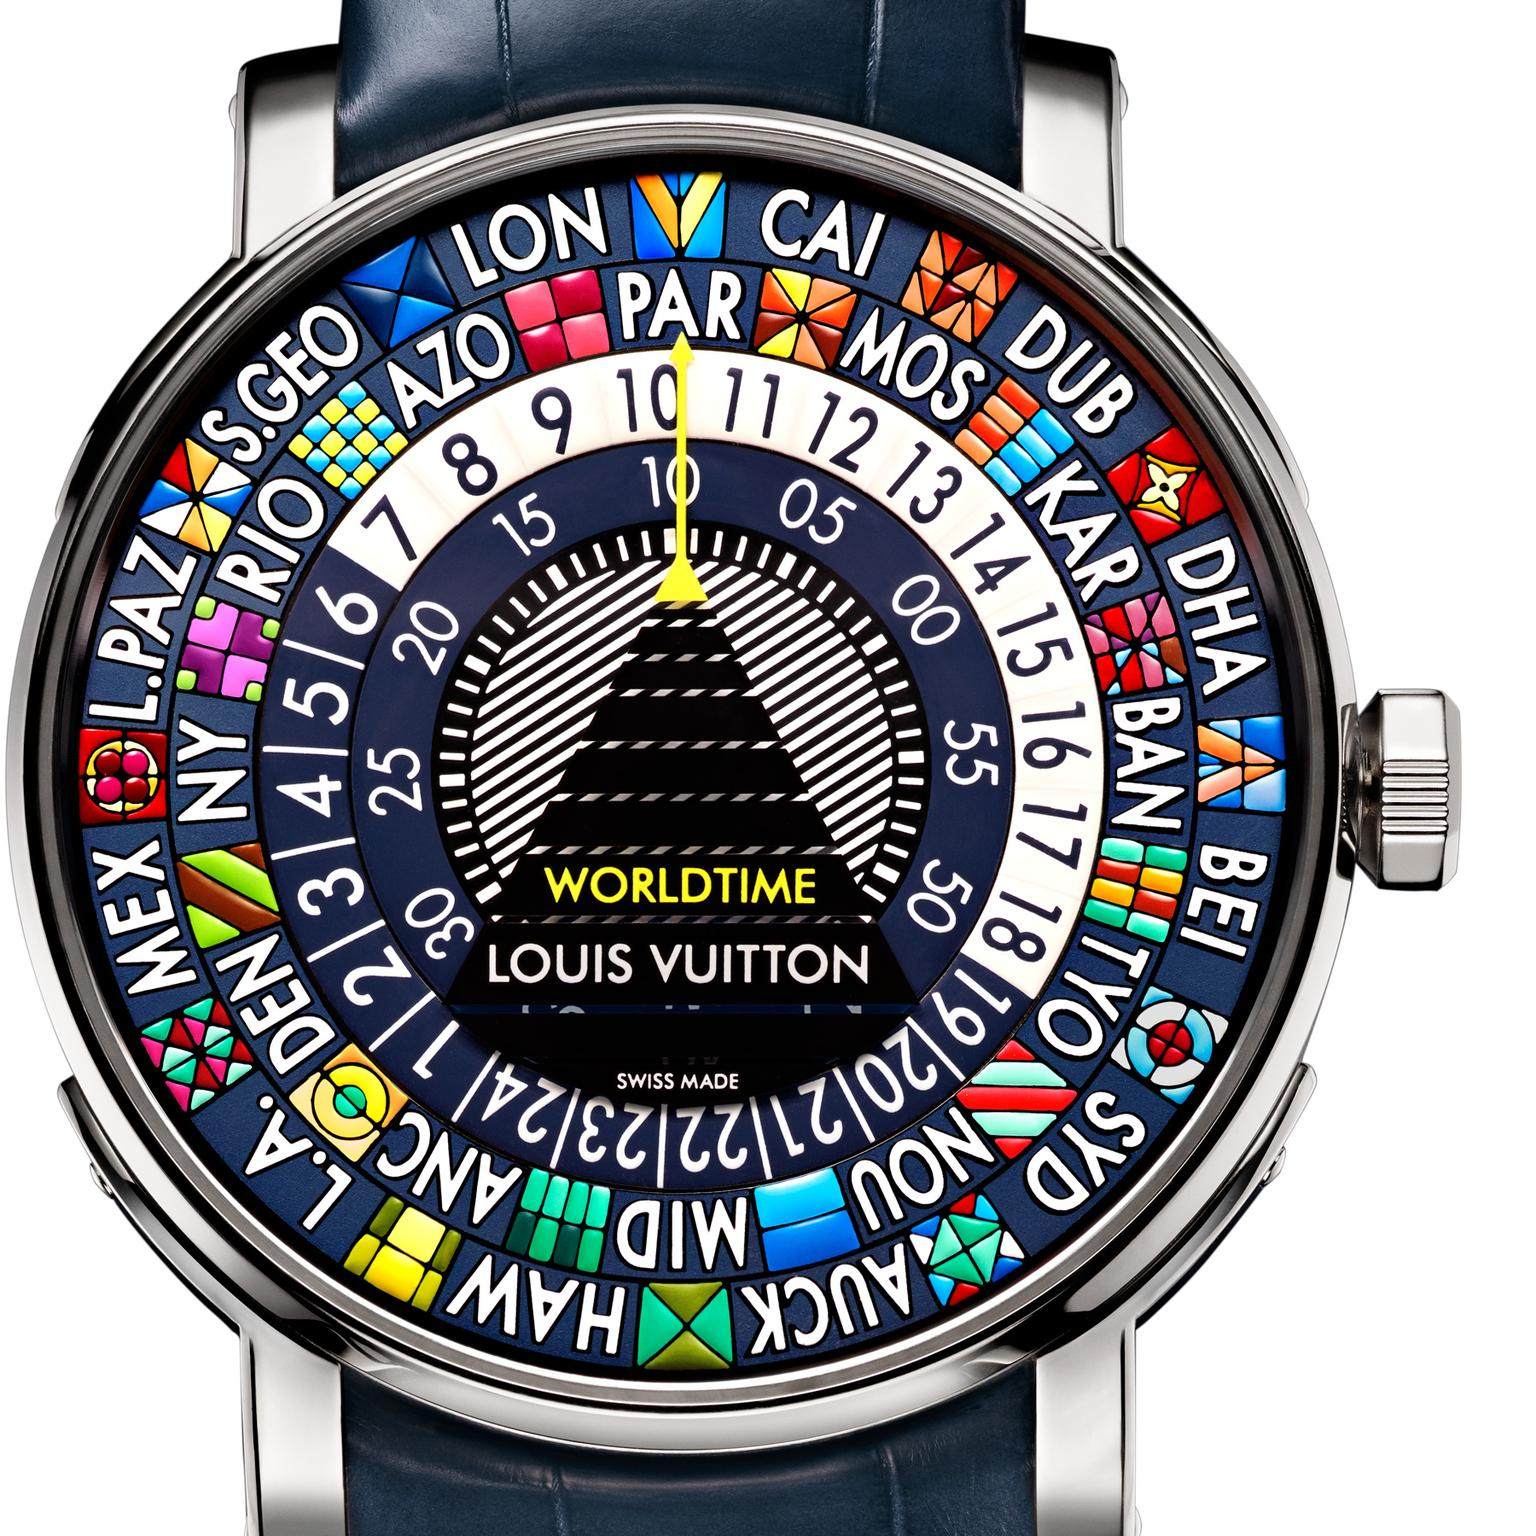 Louis Vuitton Escale Worldtime Blue watch